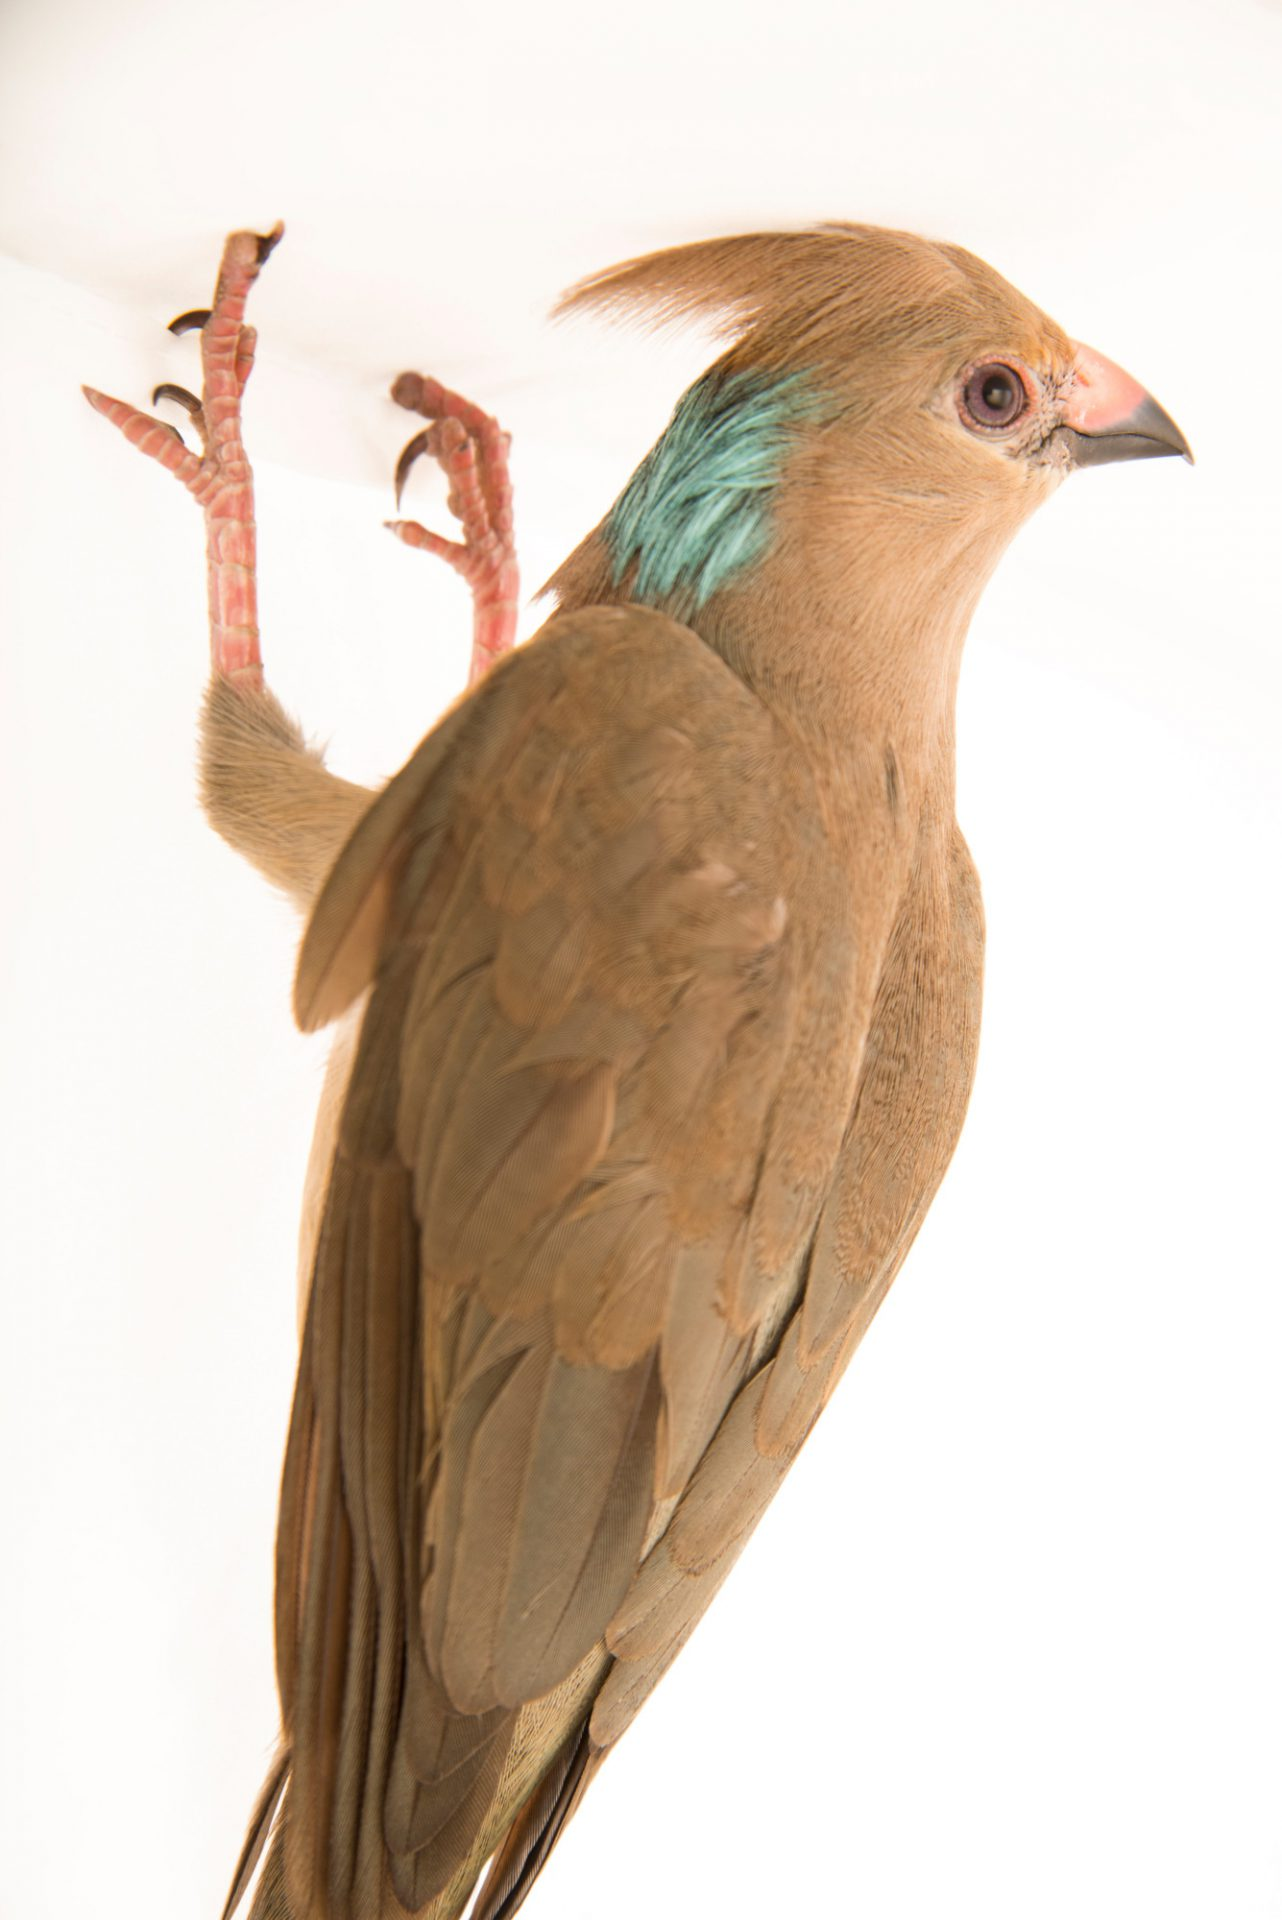 Picture of a blue naped mousebird (Urocolius macrourus) at the Jurong Bird Park.